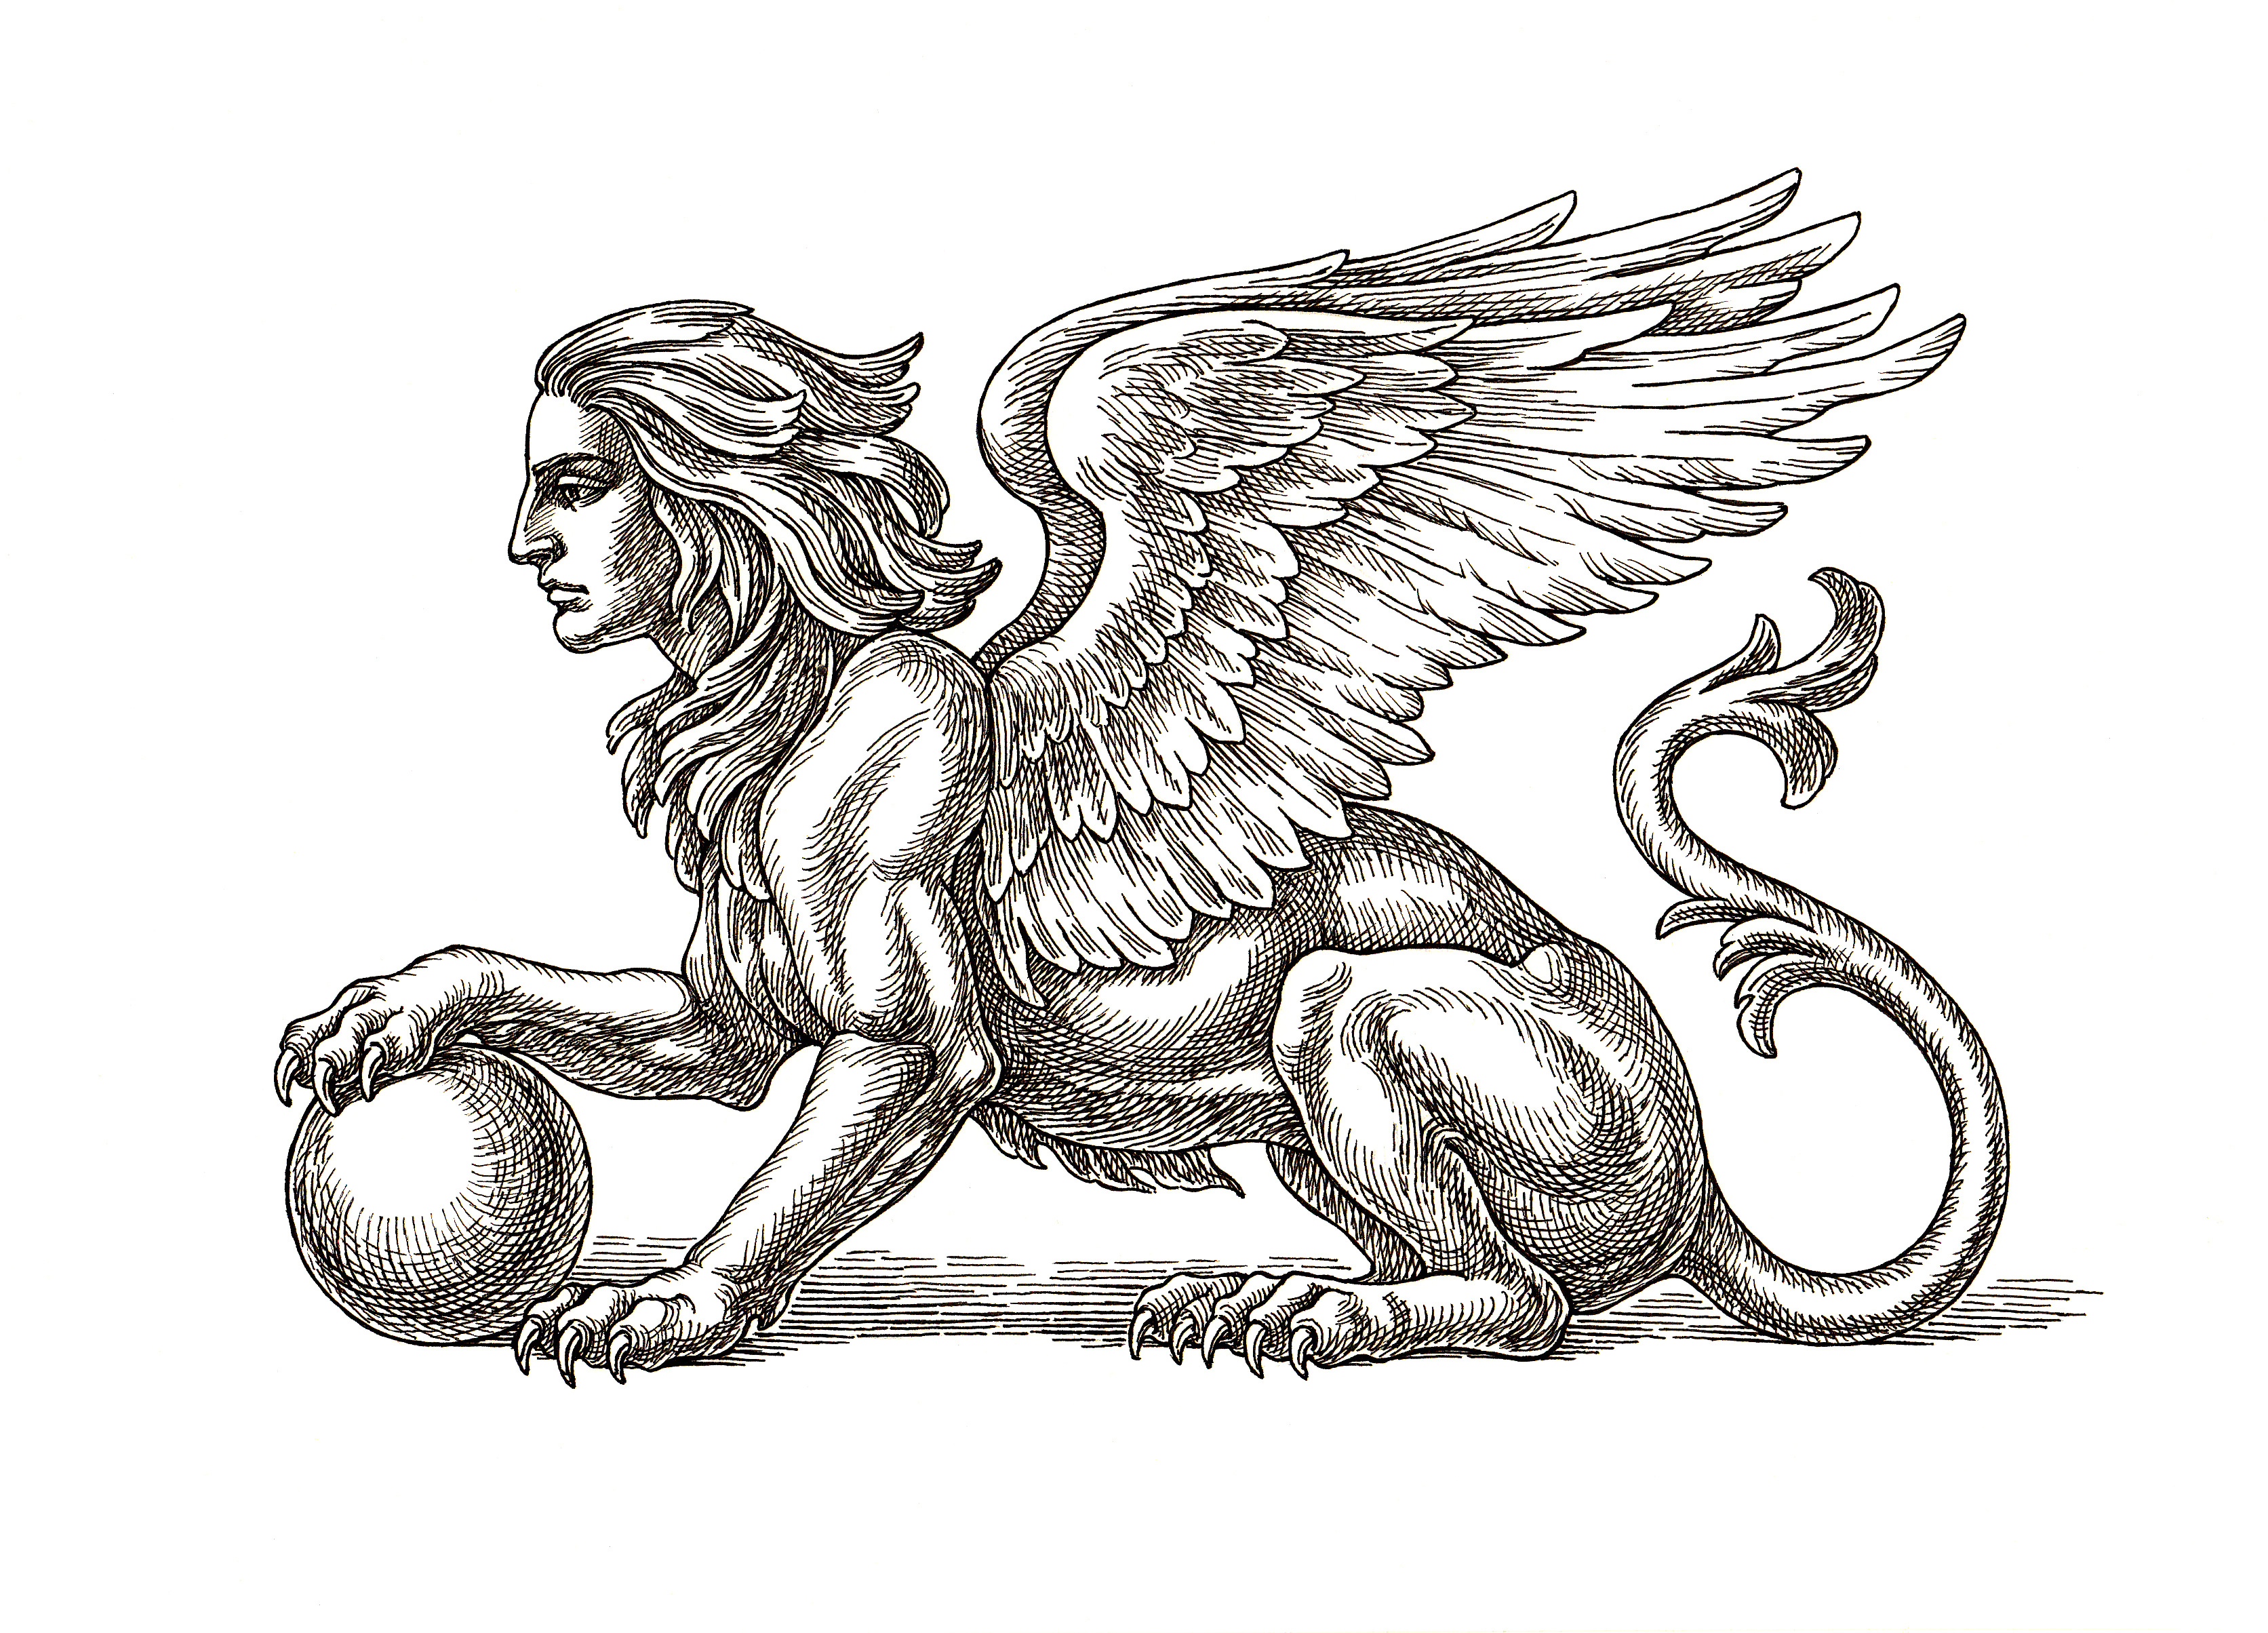 Original ink and pen drawing, winged Sphinx on white background.